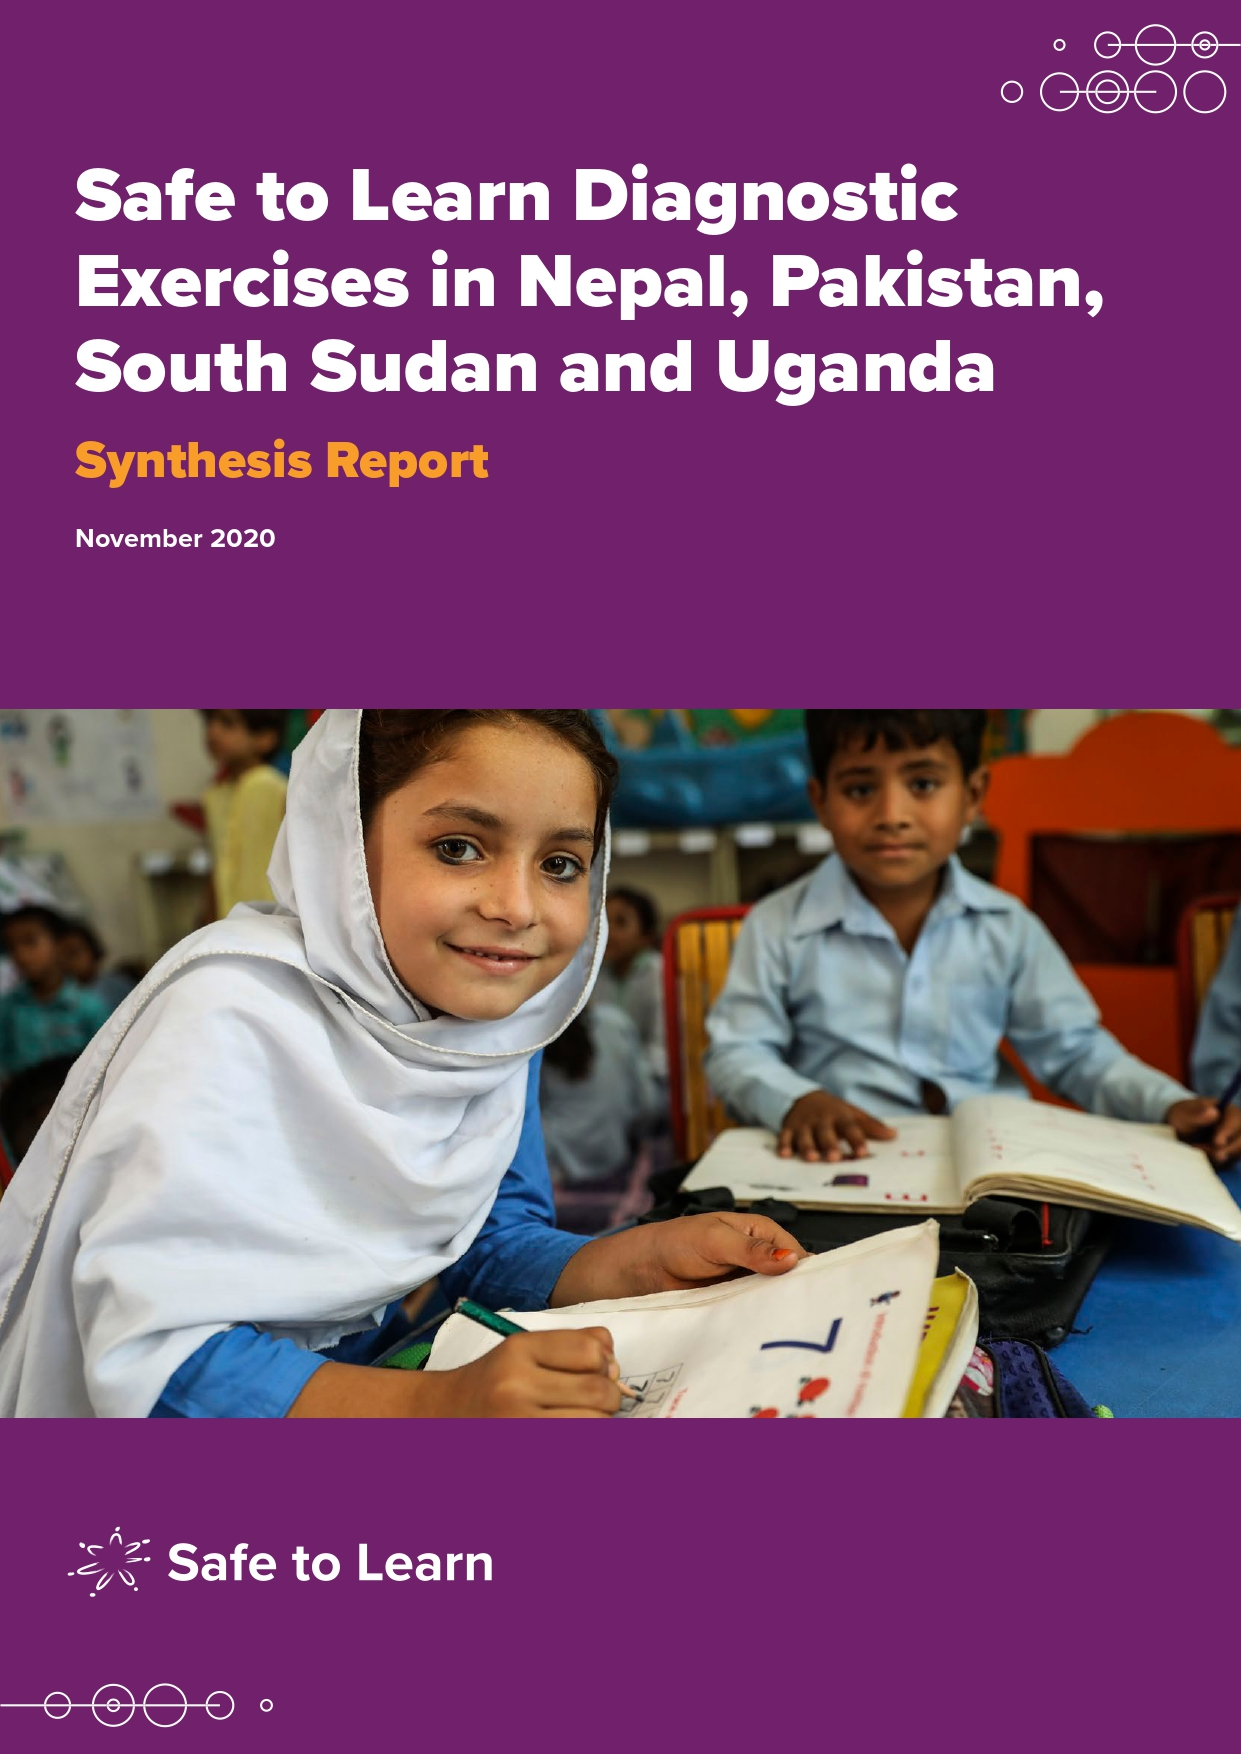 Safe to Learn Diagnostic Exercises in Nepal, Pakistan, South Sudan and Uganda